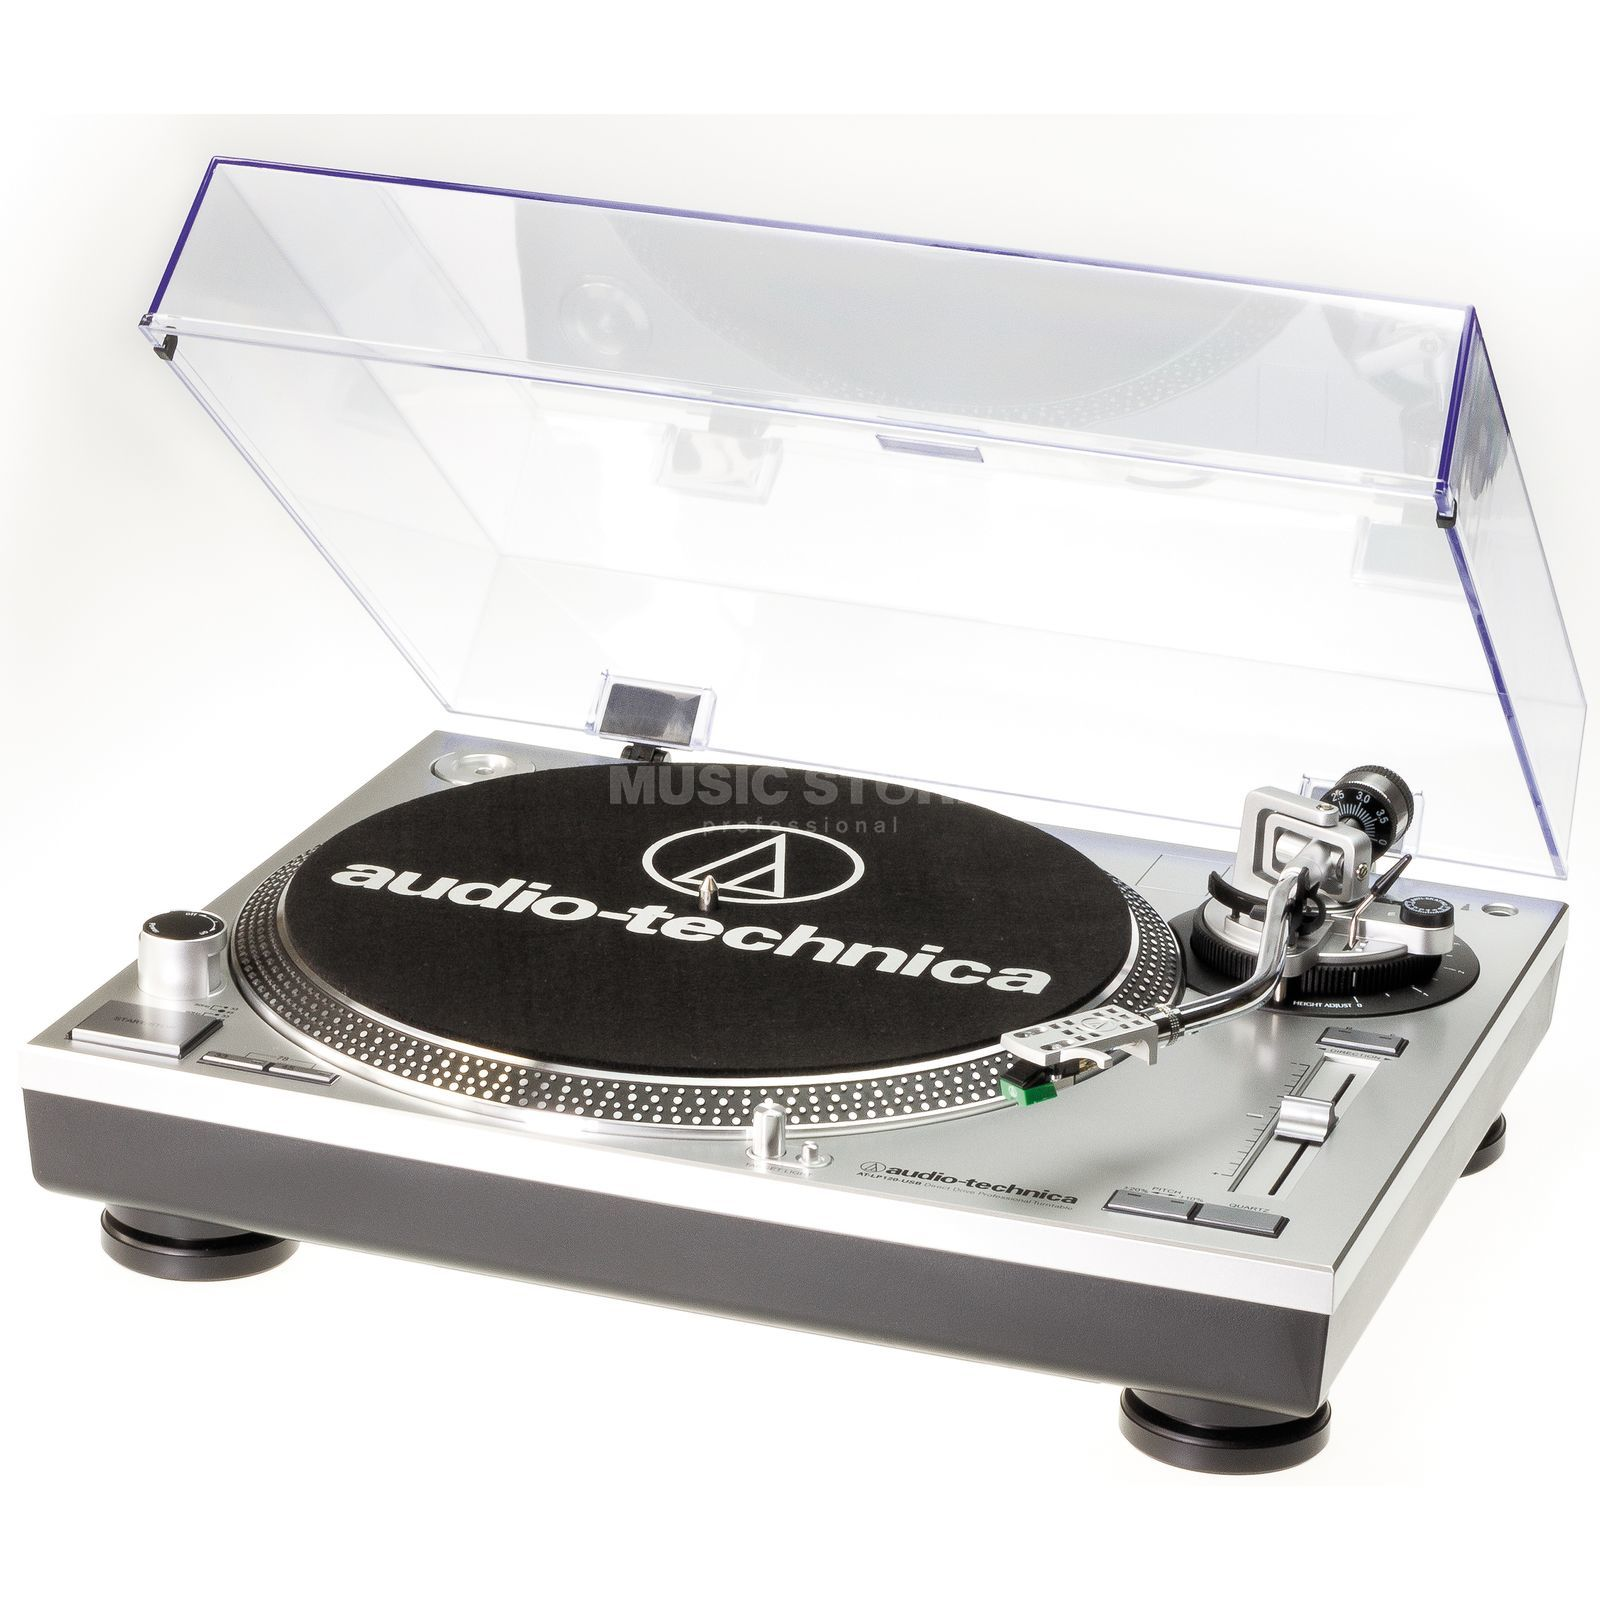 Audio-Technica AT-LP120USBHC Turntable, Direktantrieb, USB Produktbild